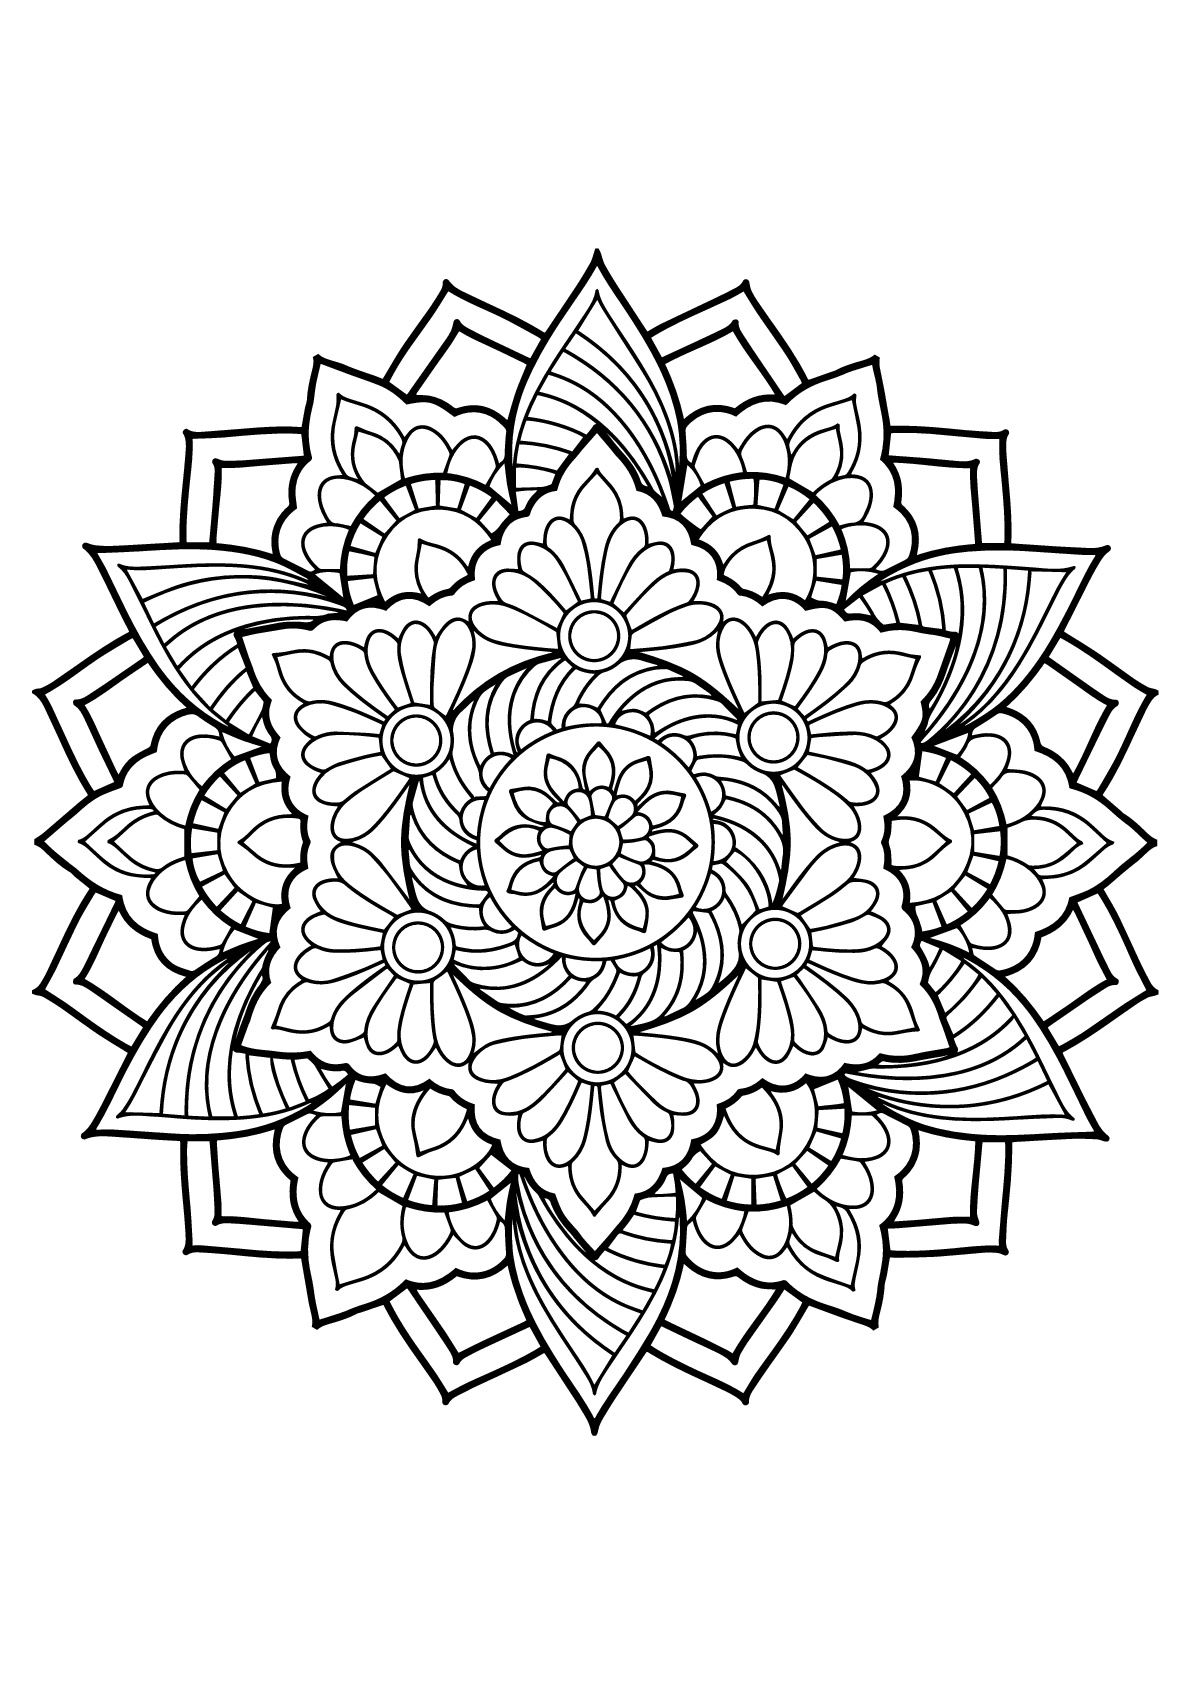 mandala pictures to color free printable mandalas to colour in the playroom to color pictures mandala